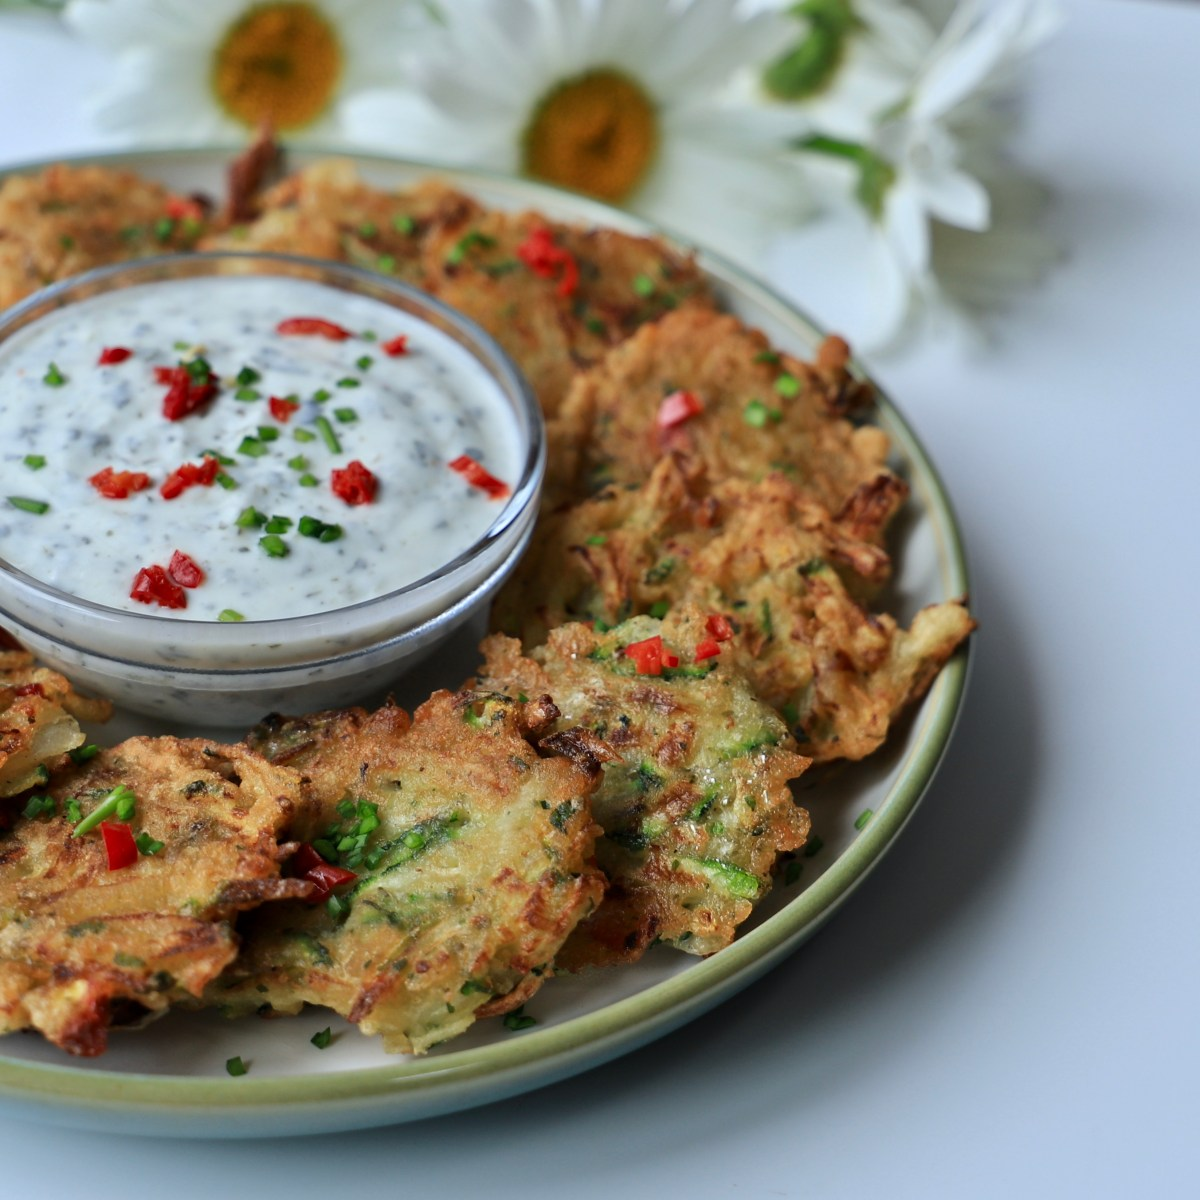 Courgette & Kohlrabi Fritters